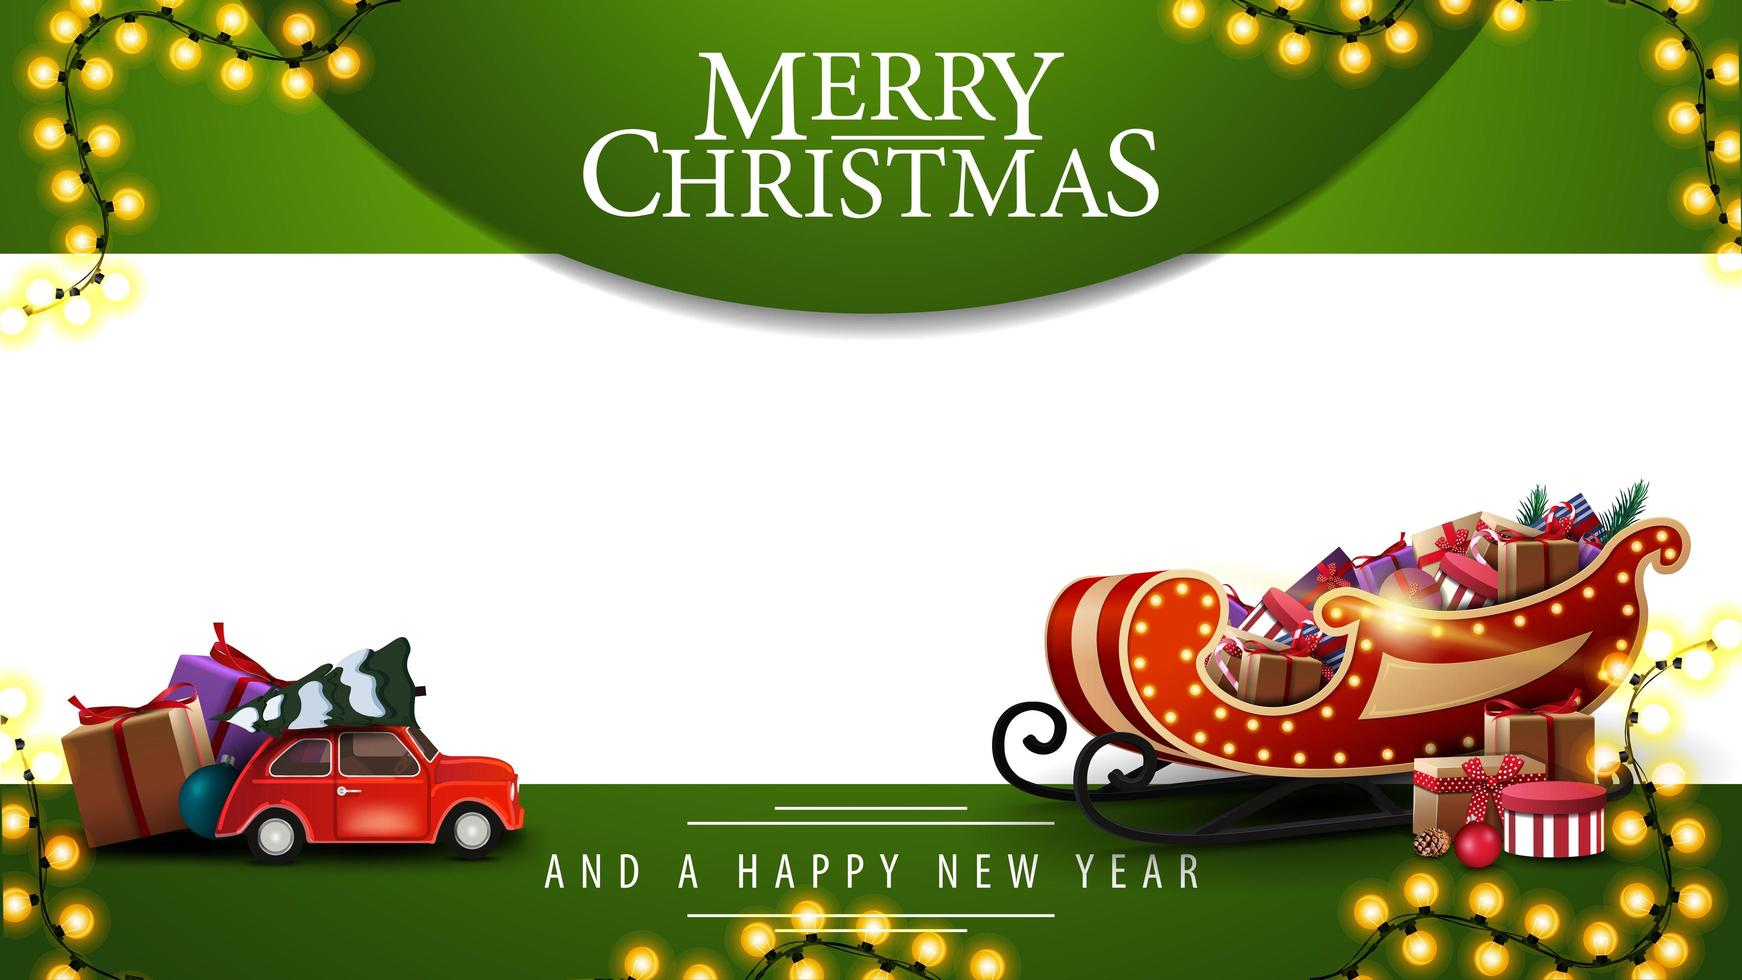 Merry Christmas and happy new Year, green and white template for your arts with garland, red vintage toy car carrying Christmas tree and Santa Sleigh with presents vector